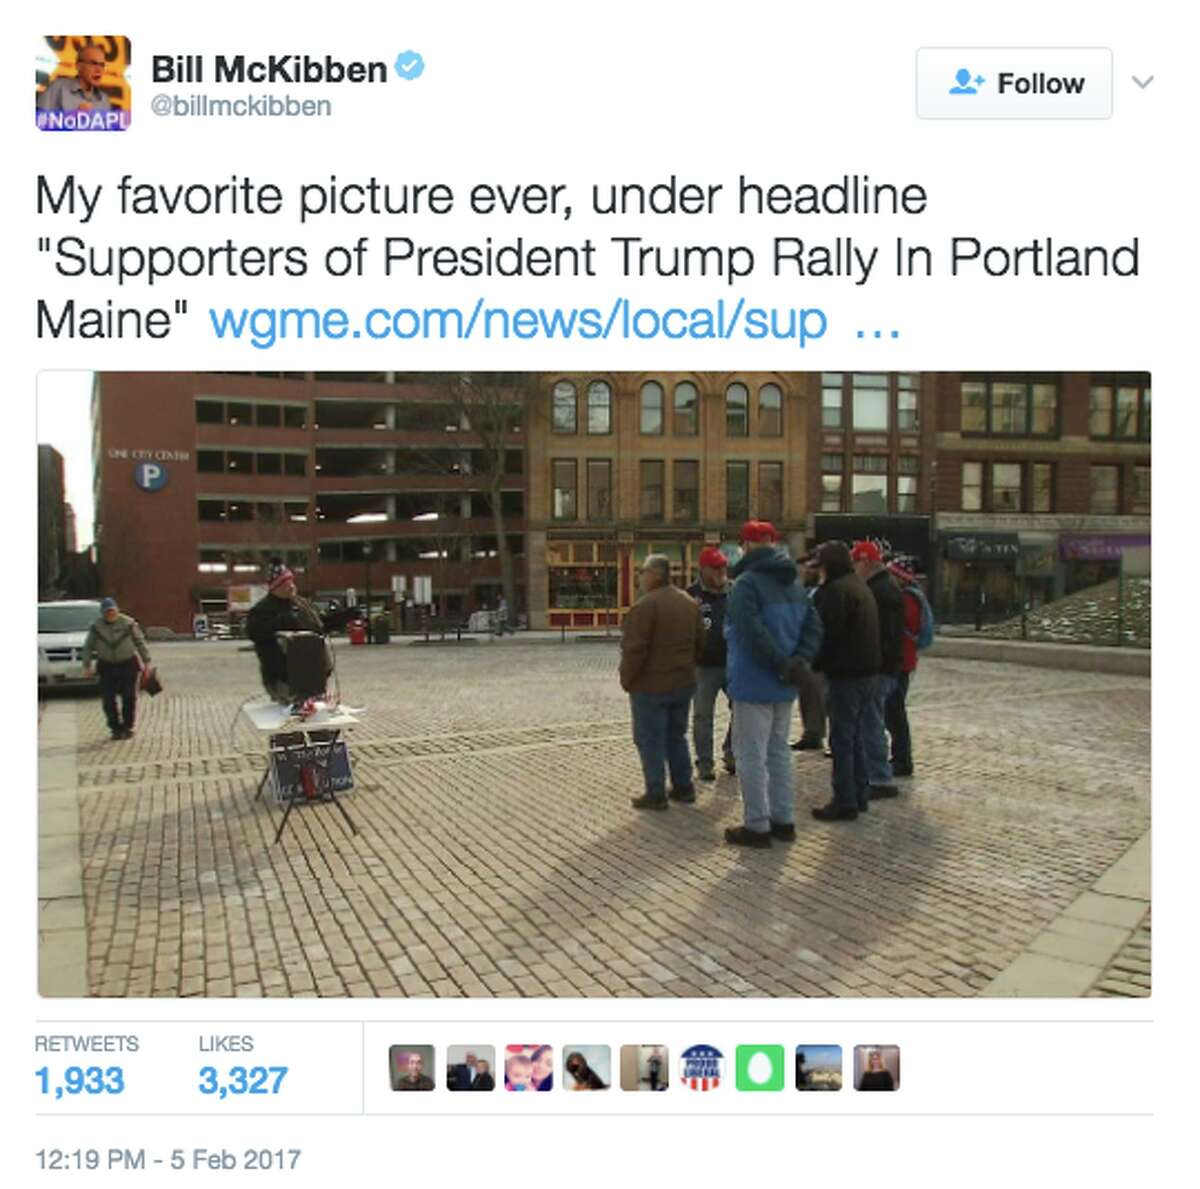 Twitter reacts to WGME-TV's coverage of Trump rally in Portland, Maine on Feb. 4, 2017. (@BillMcKibben)